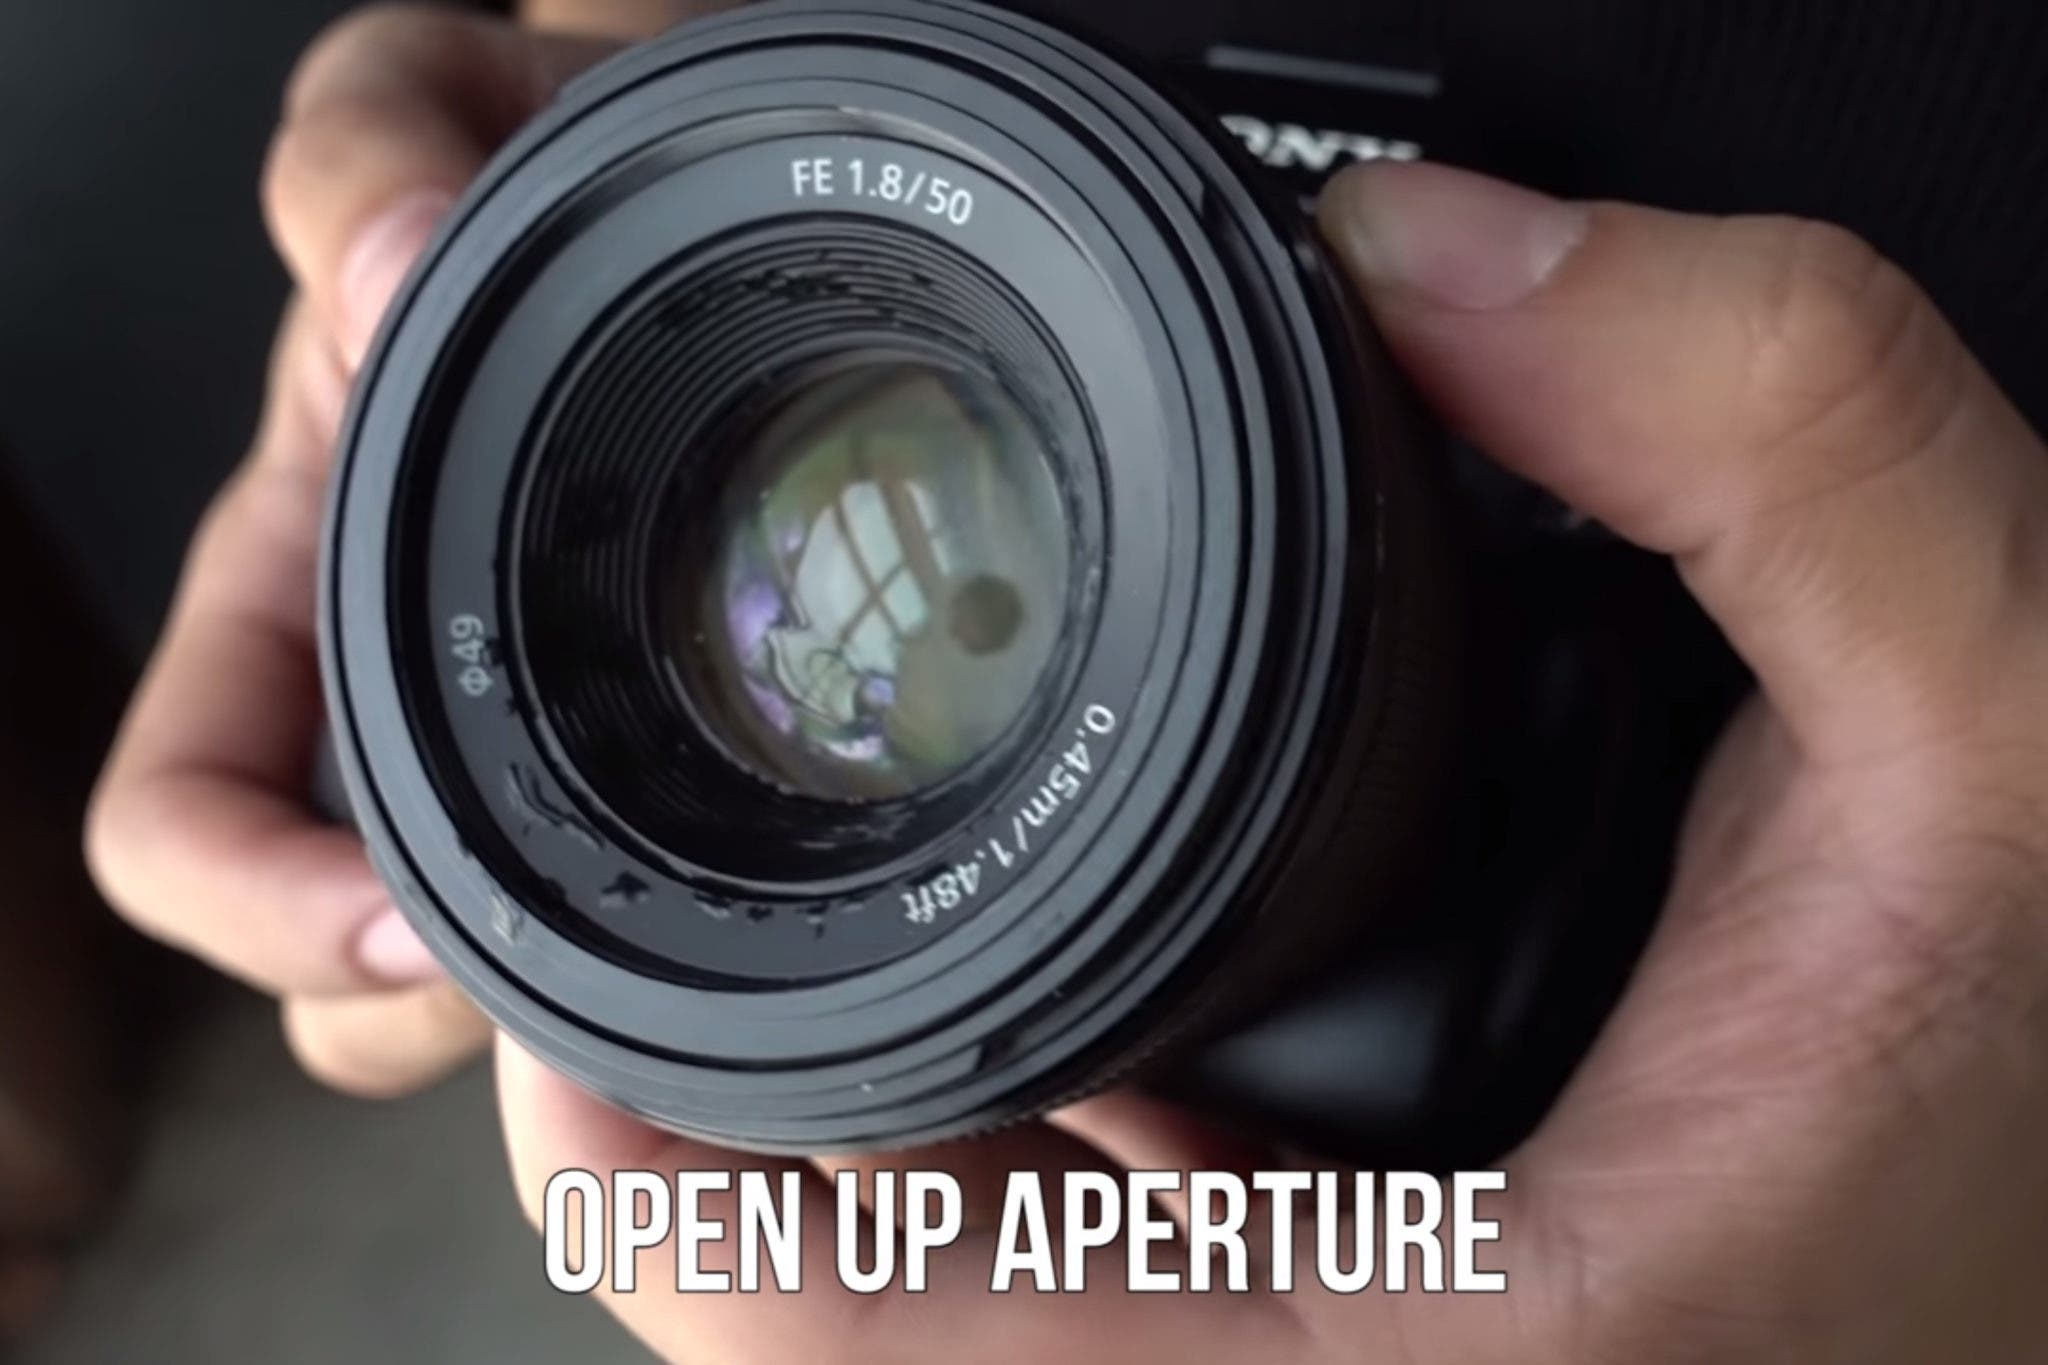 5 Simple Lens Effects You Can Make For Under $10